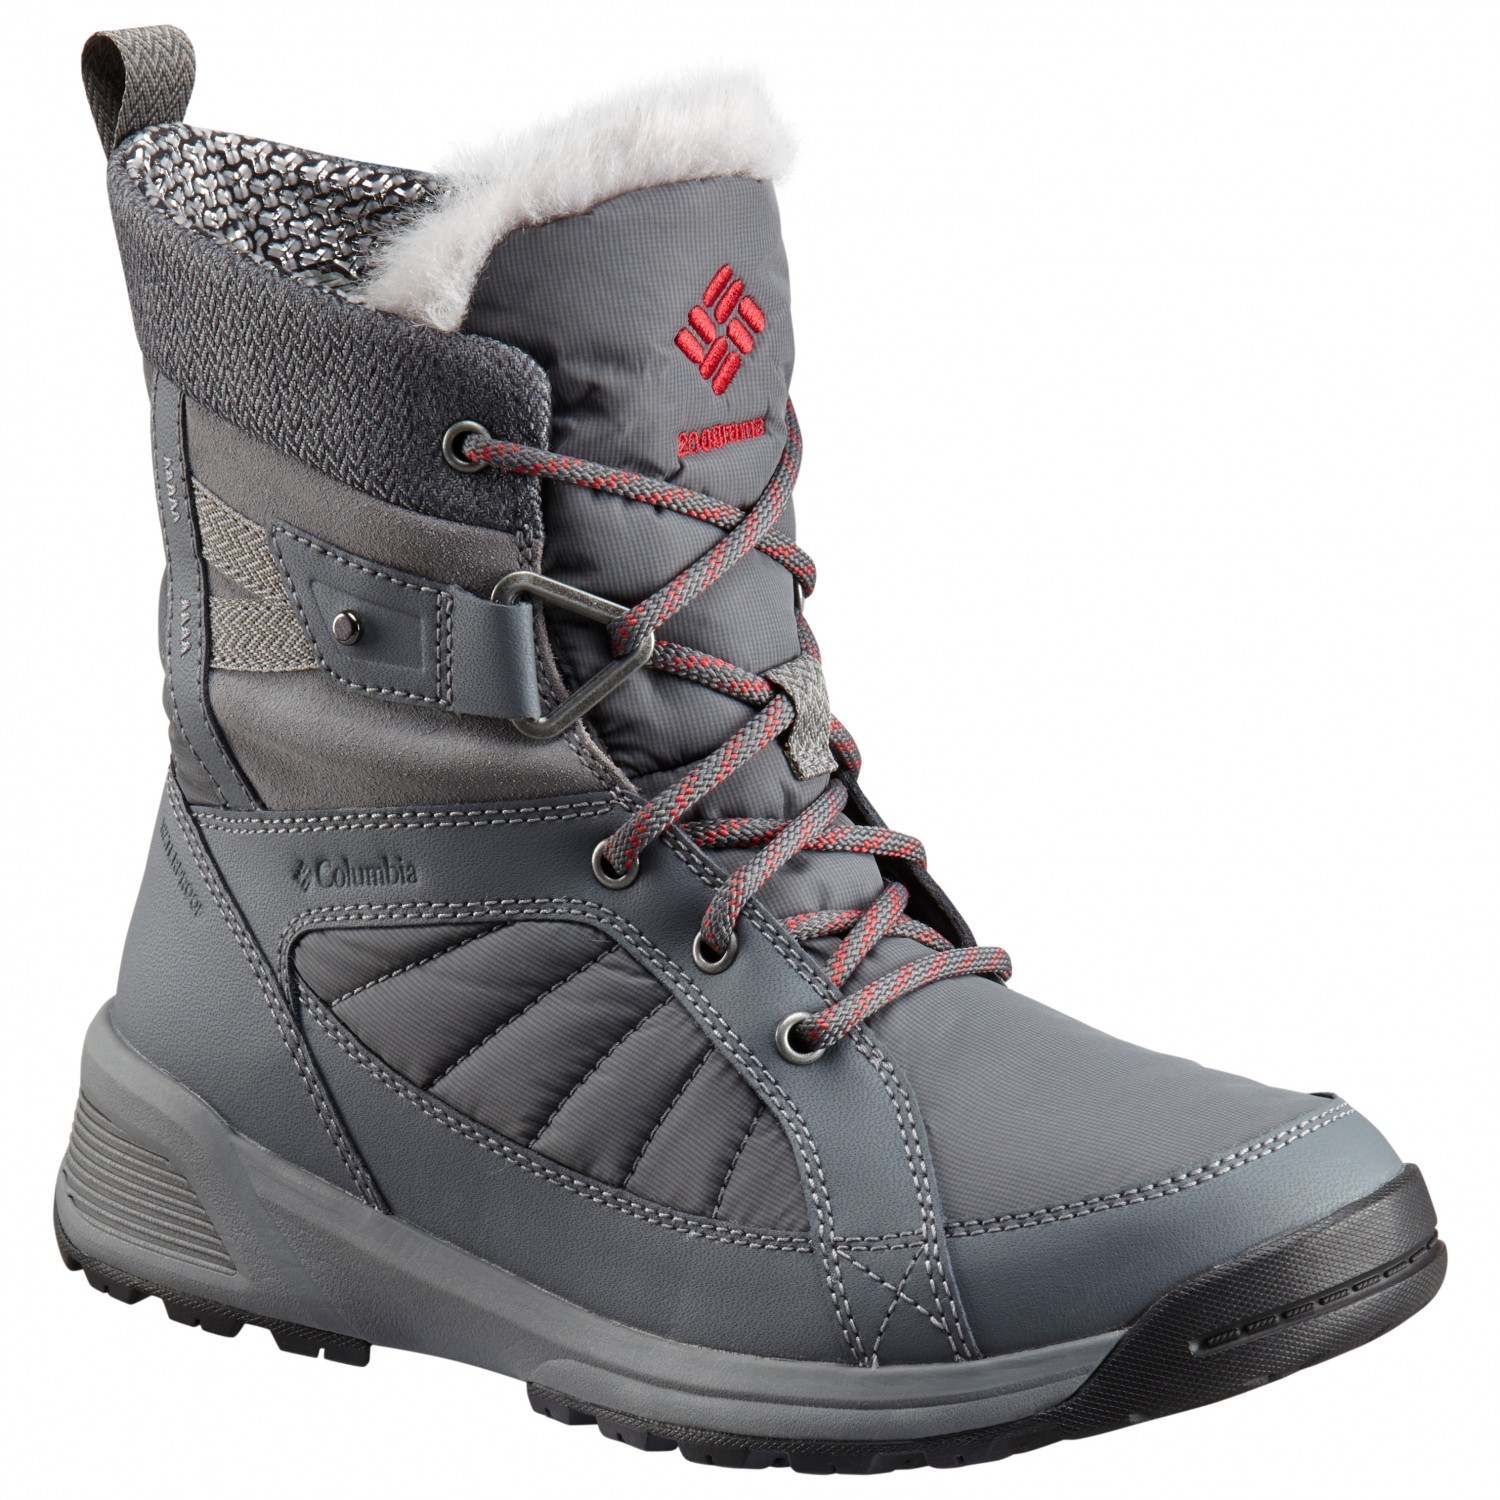 5345073a114 Columbia Meadows Shorty Omni-Heat - Chaussures d hiver Femme ...